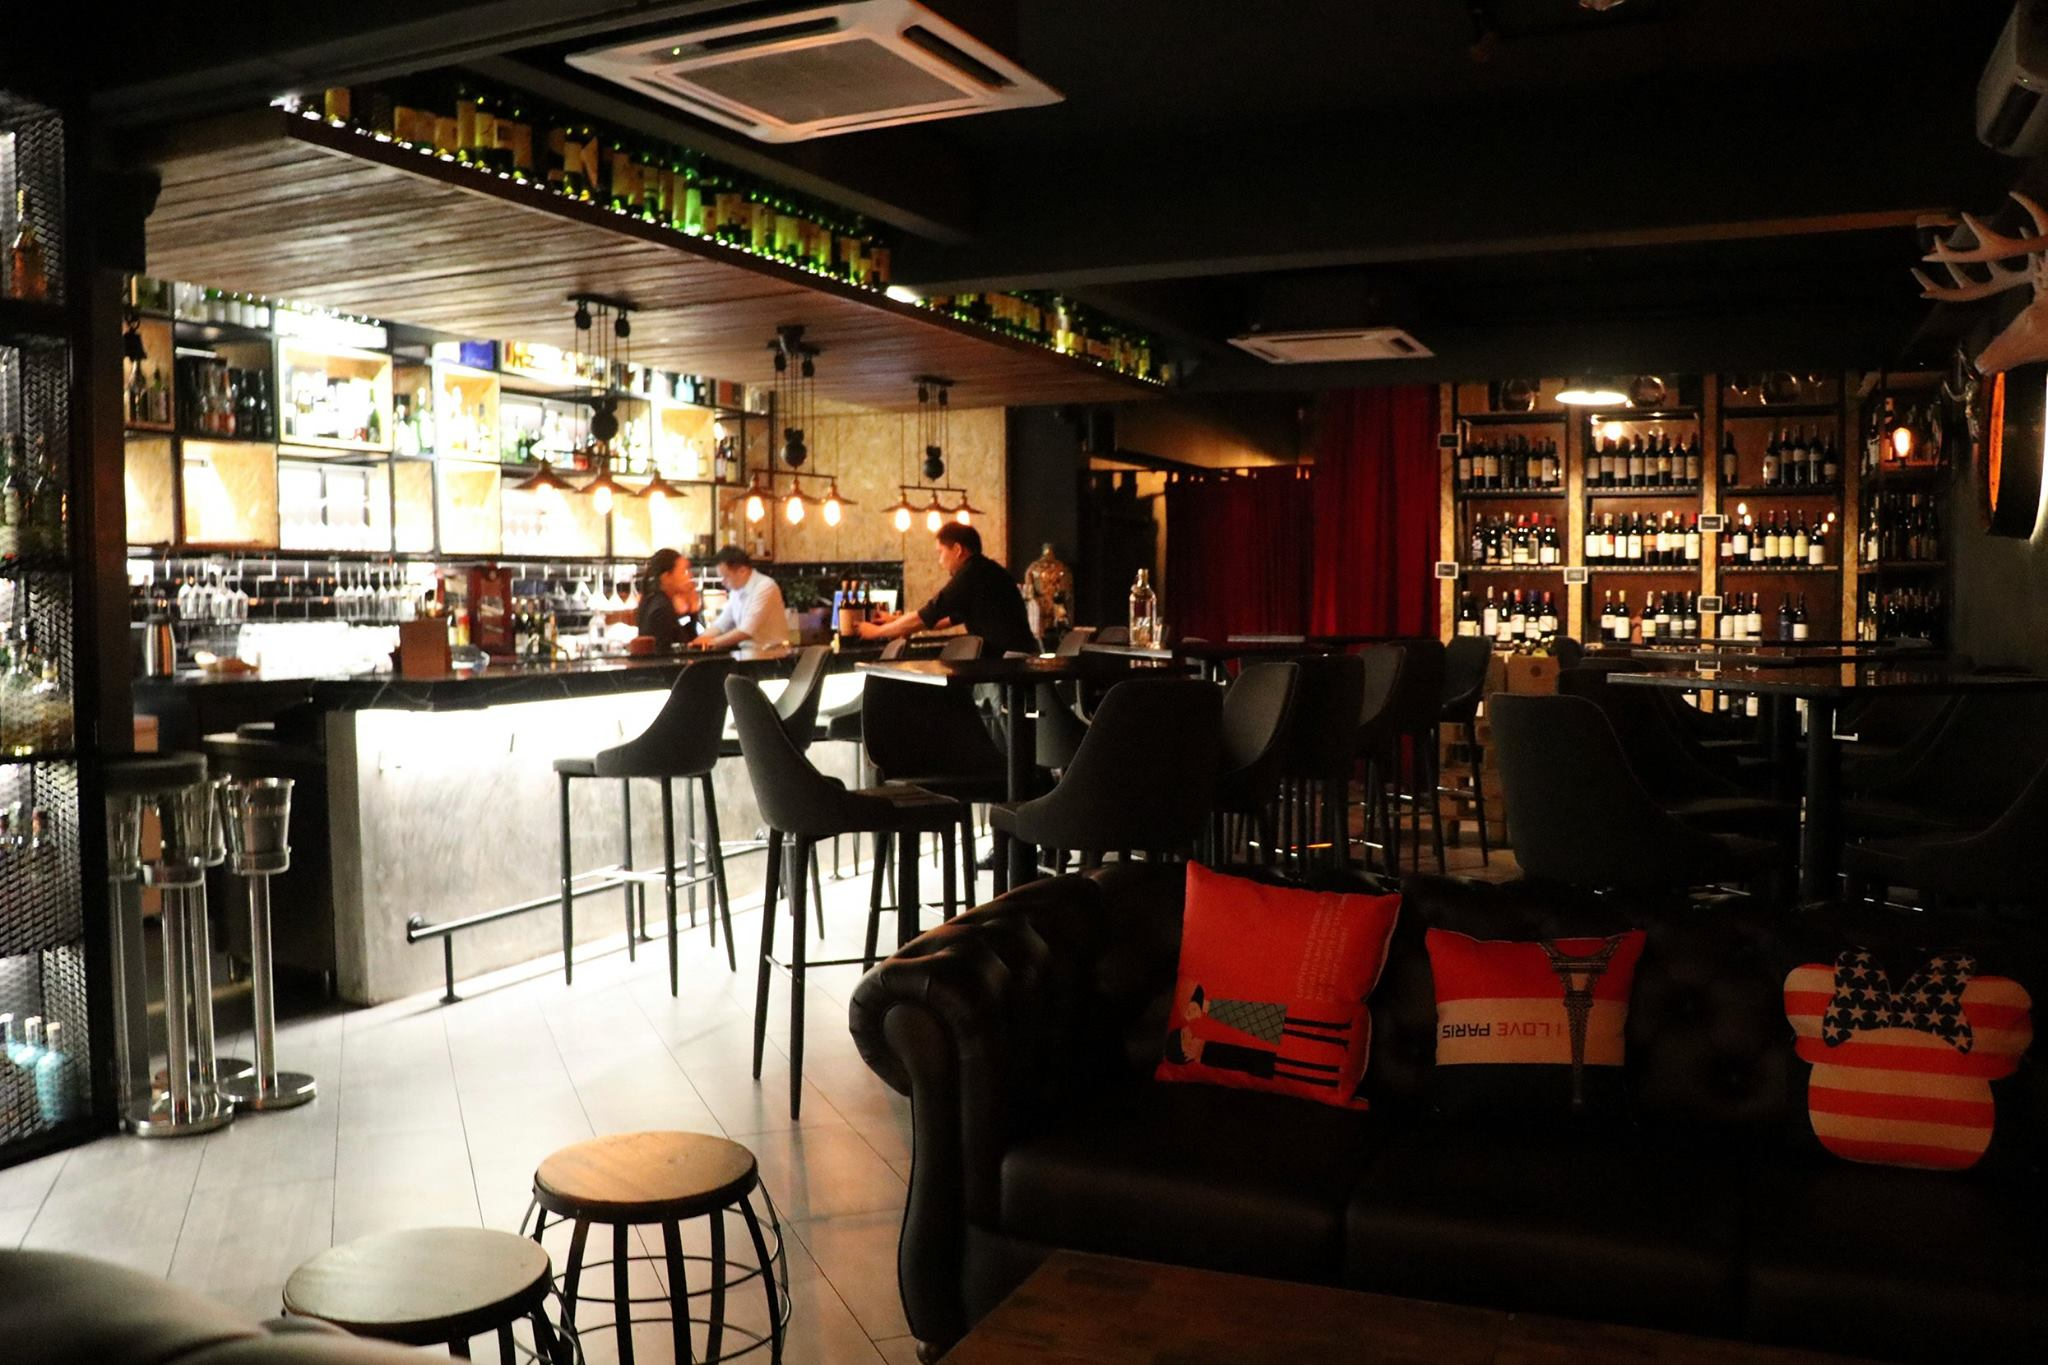 Restaurant With Private Room In Klang Valley